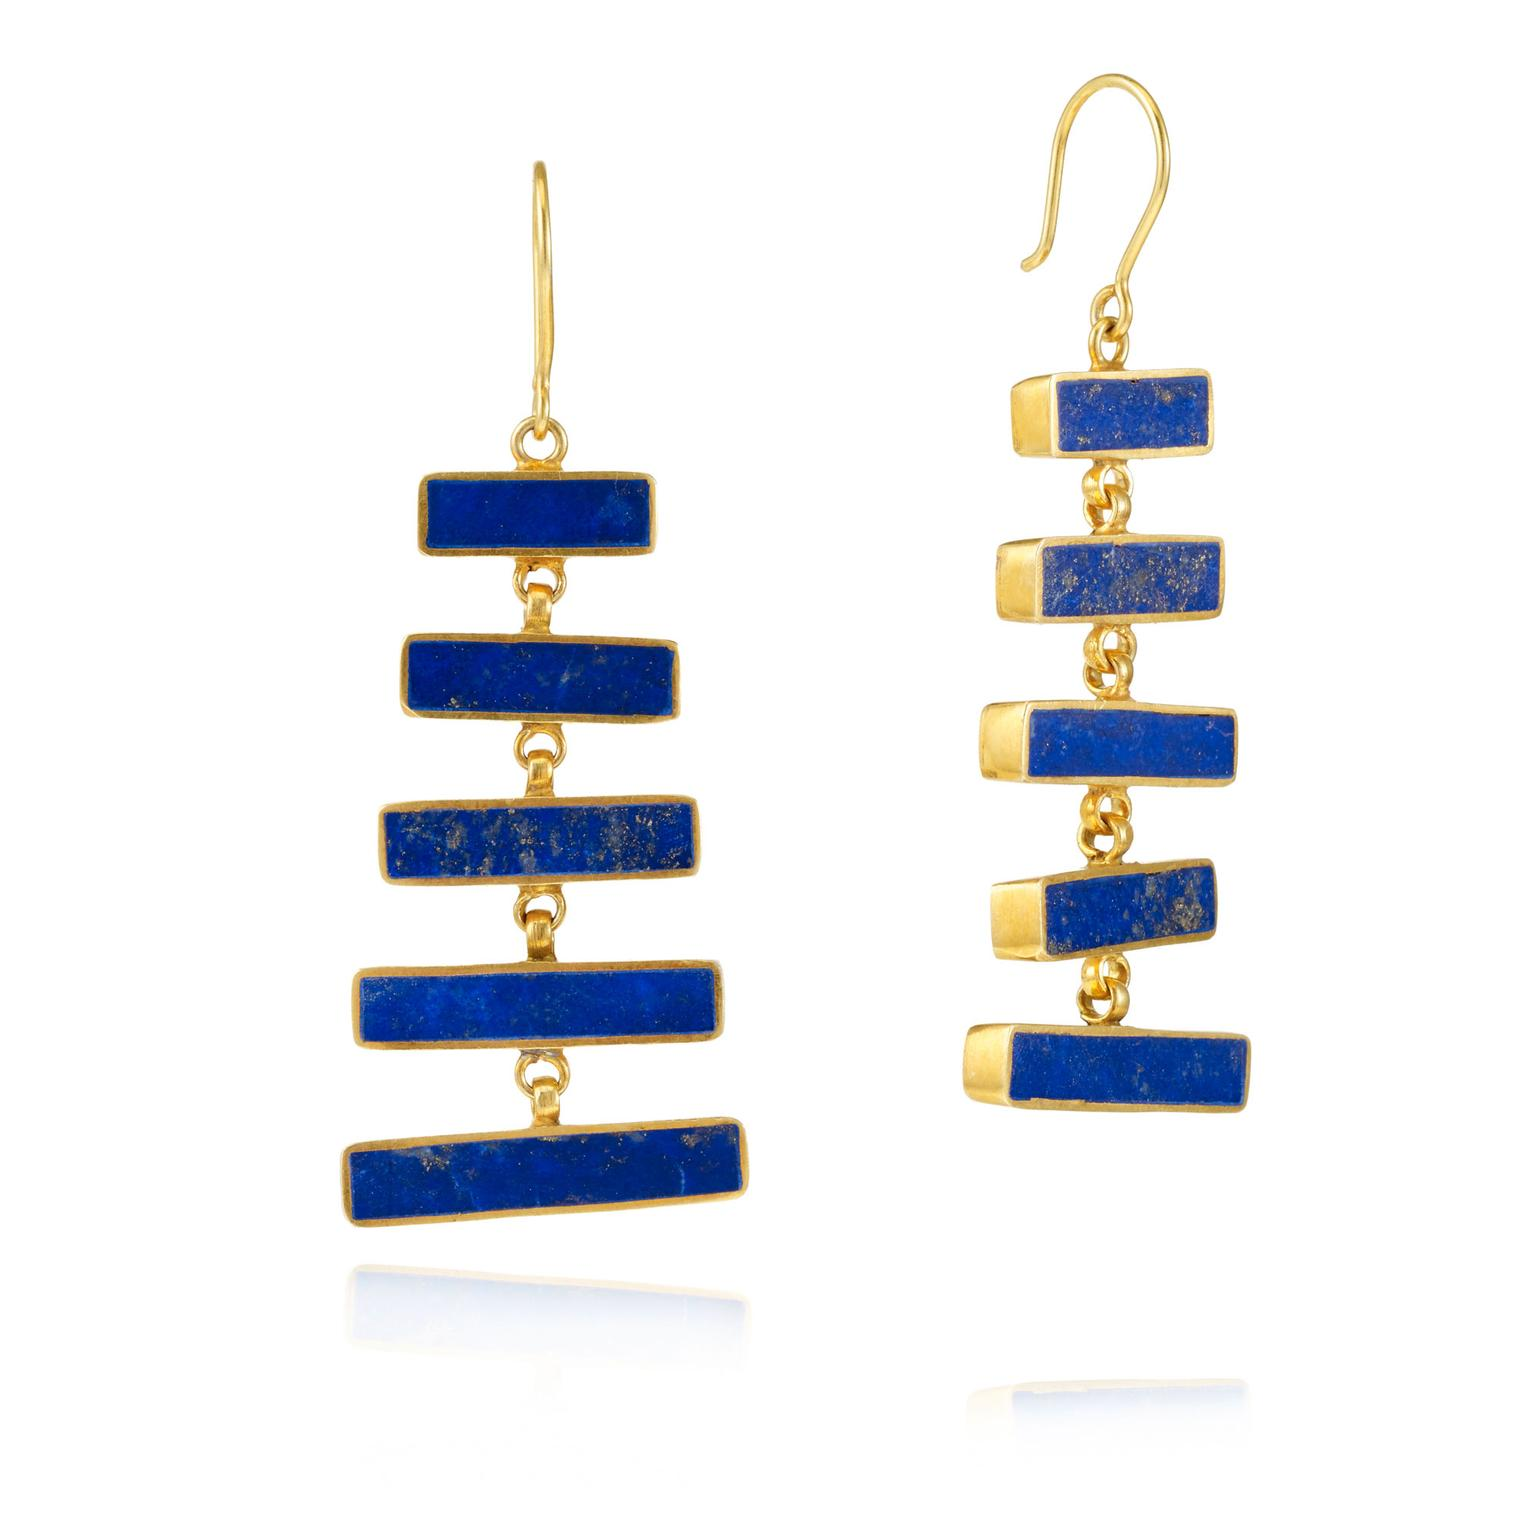 Pippa Small gold-plated silver and lapis lazuli earrings